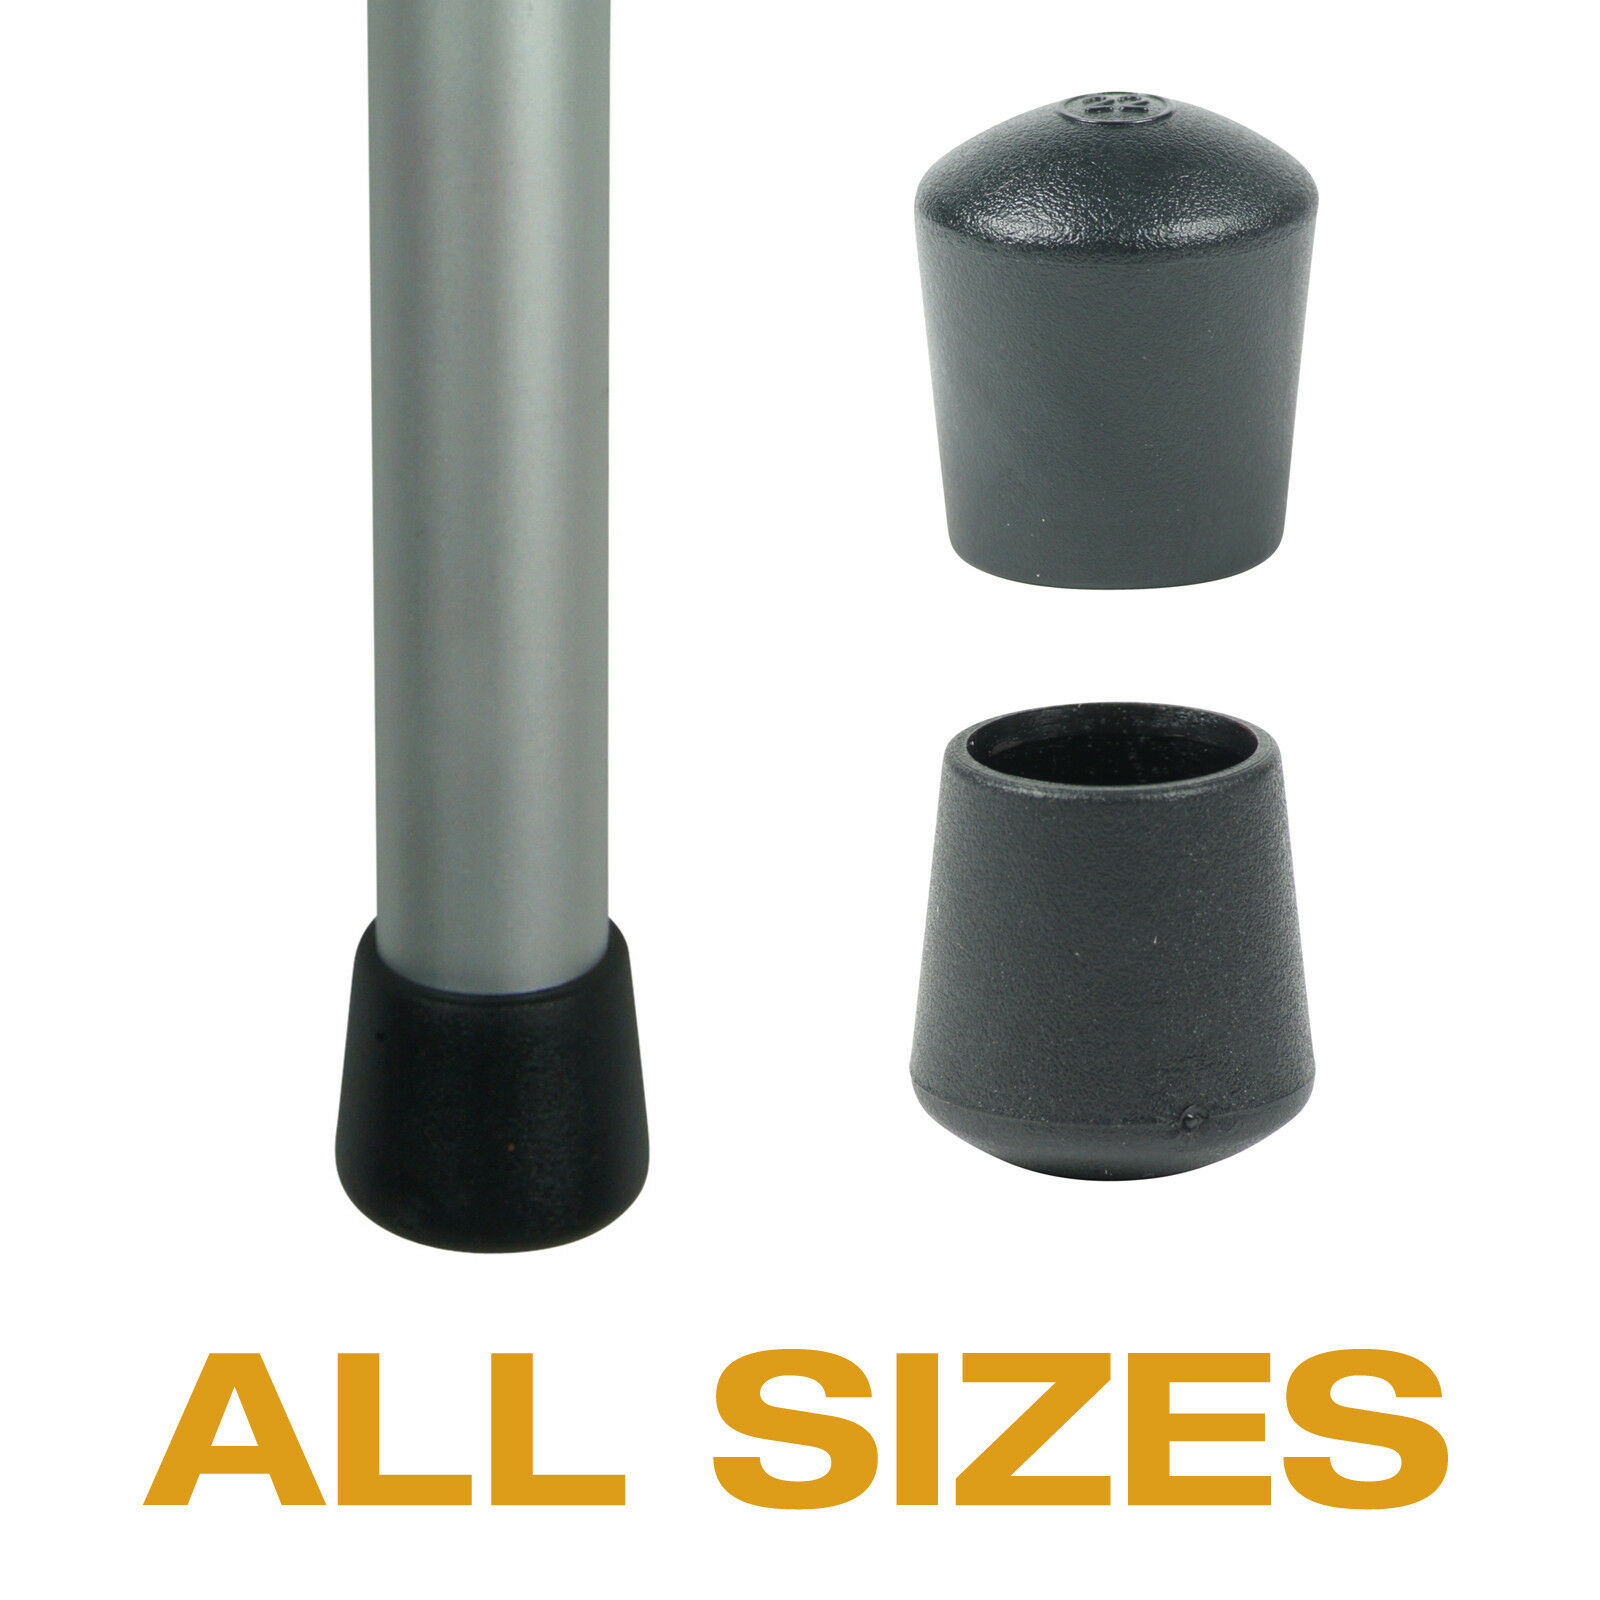 chair stoppers plastic folding covers bed bath and beyond flexible black ferrules for tables legs